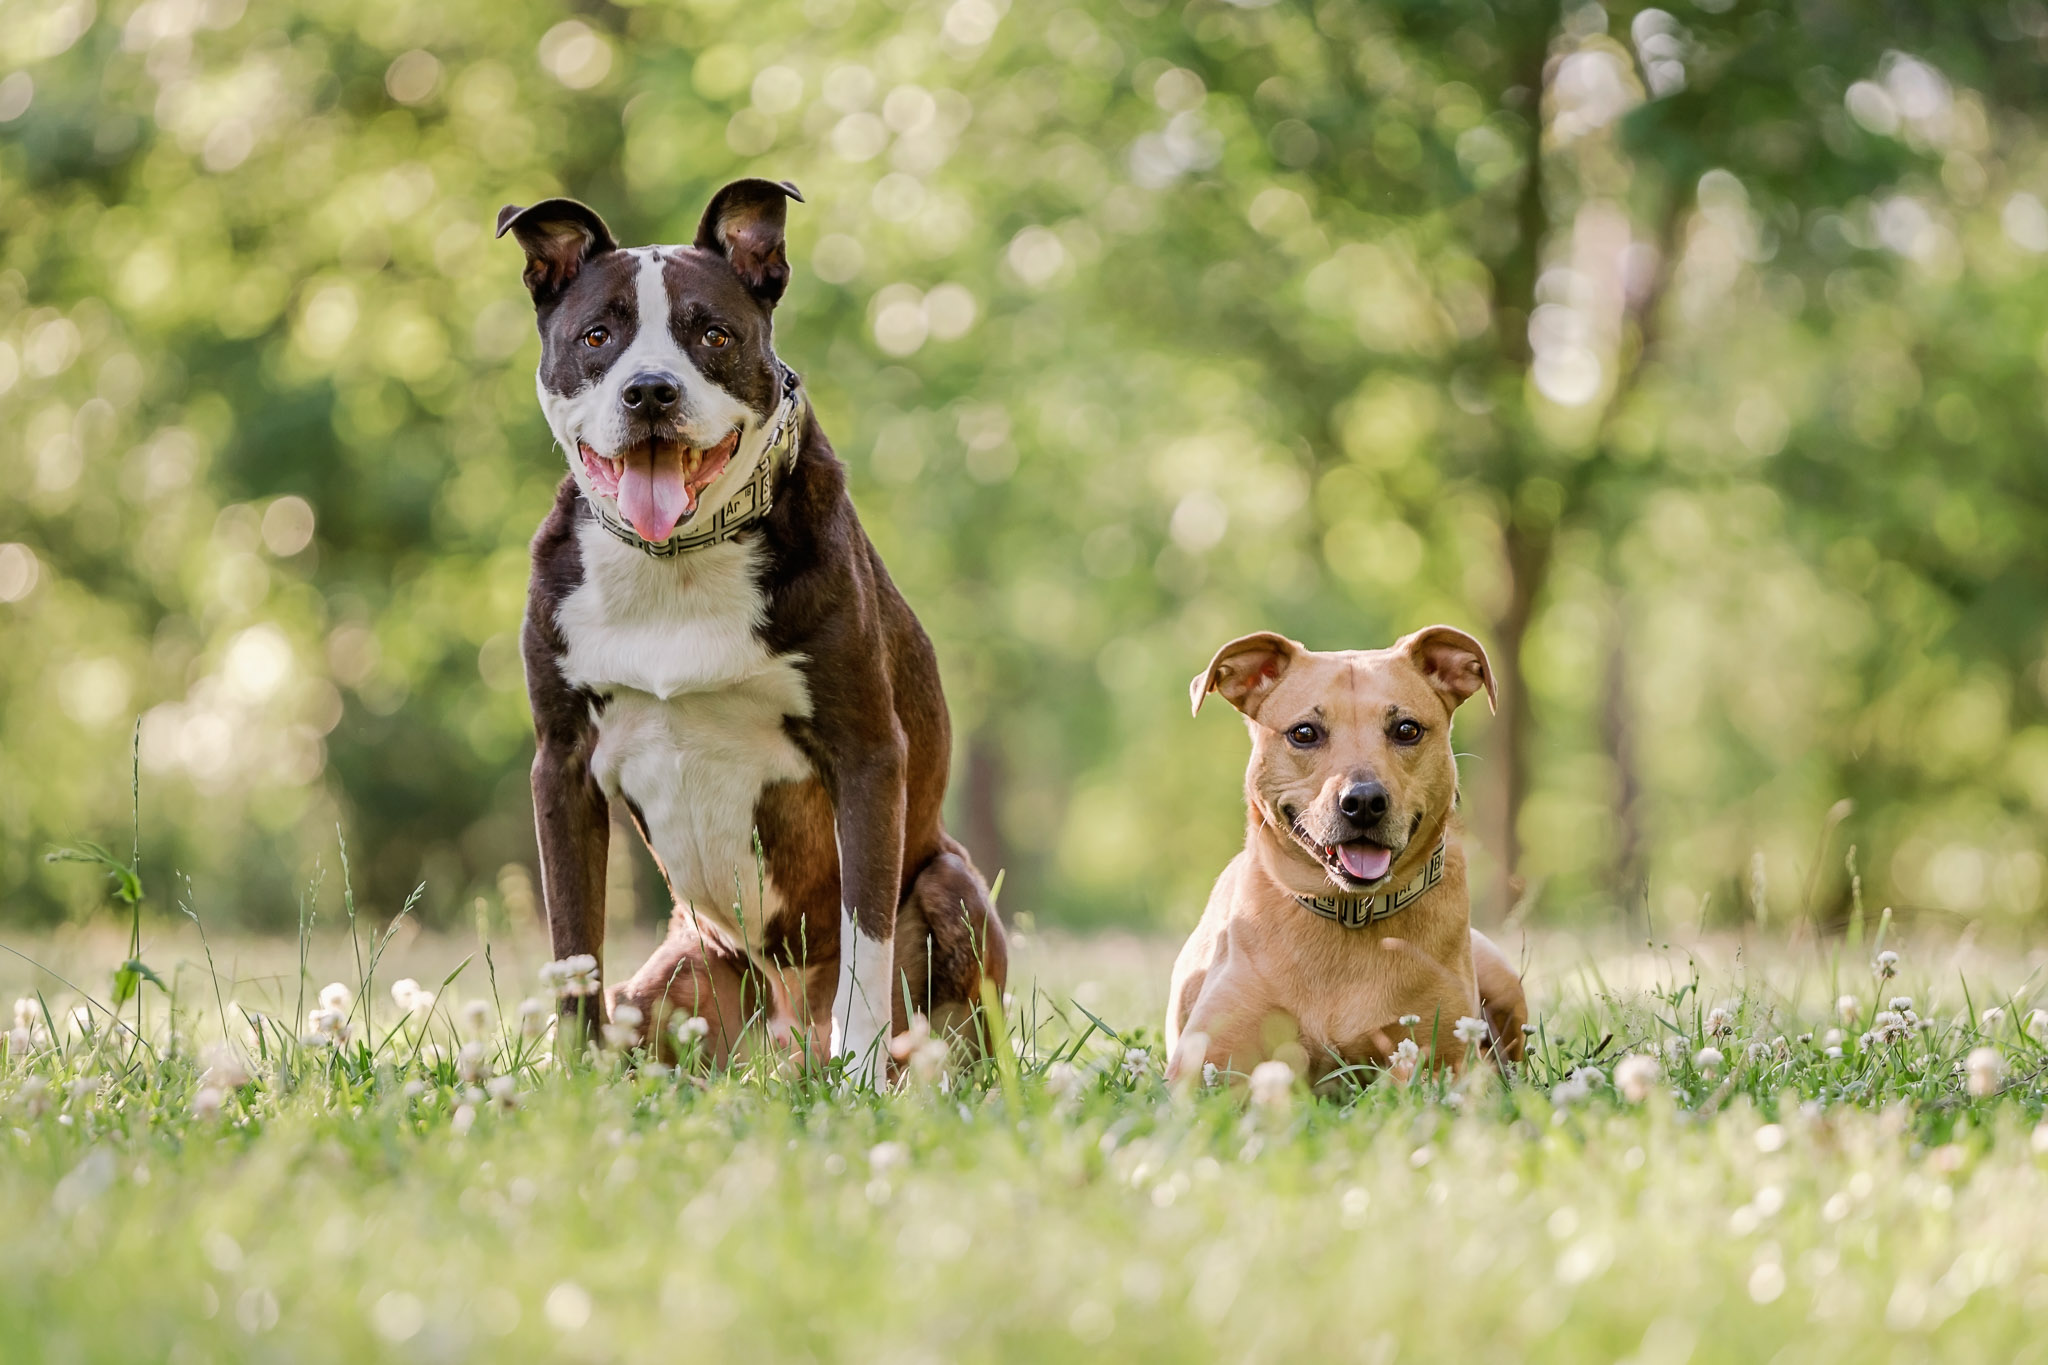 A must have image from your pet photography session - a photo of your dogs together.